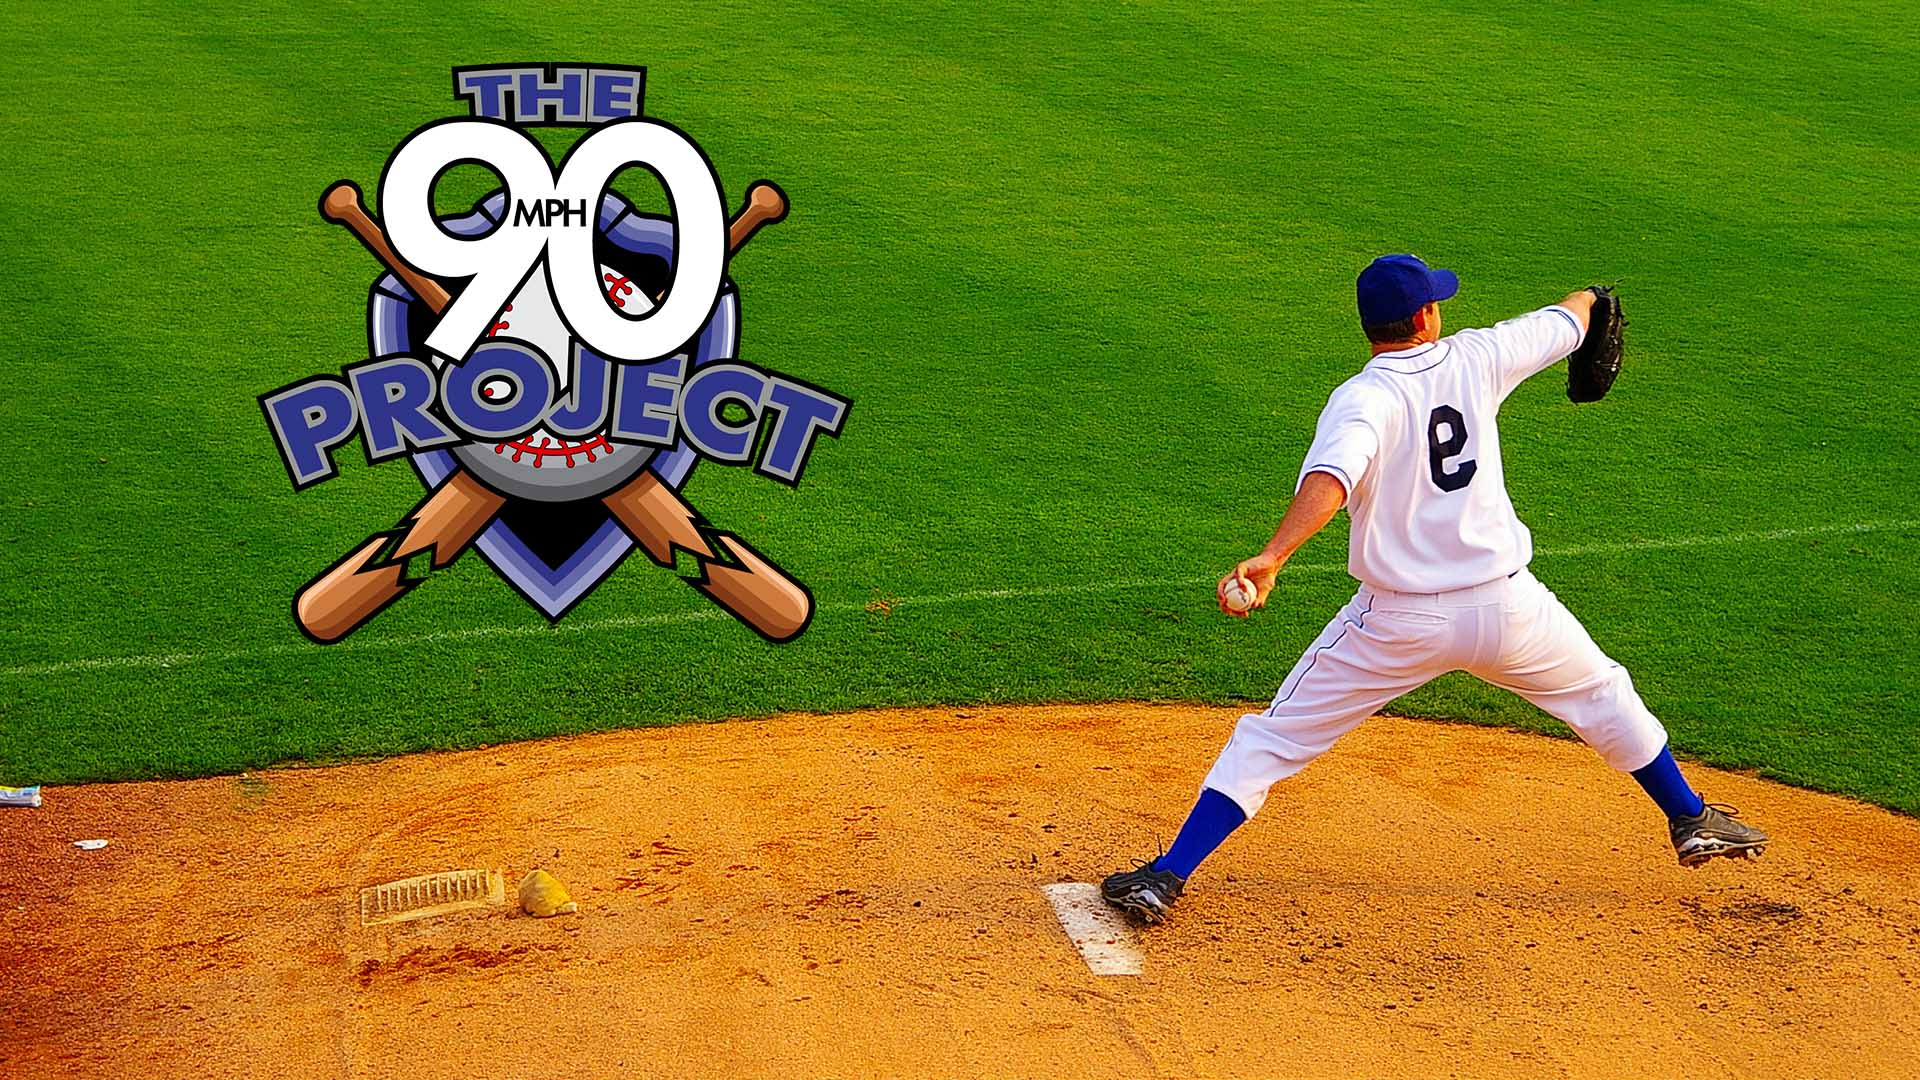 The 90 Project (2021-22)